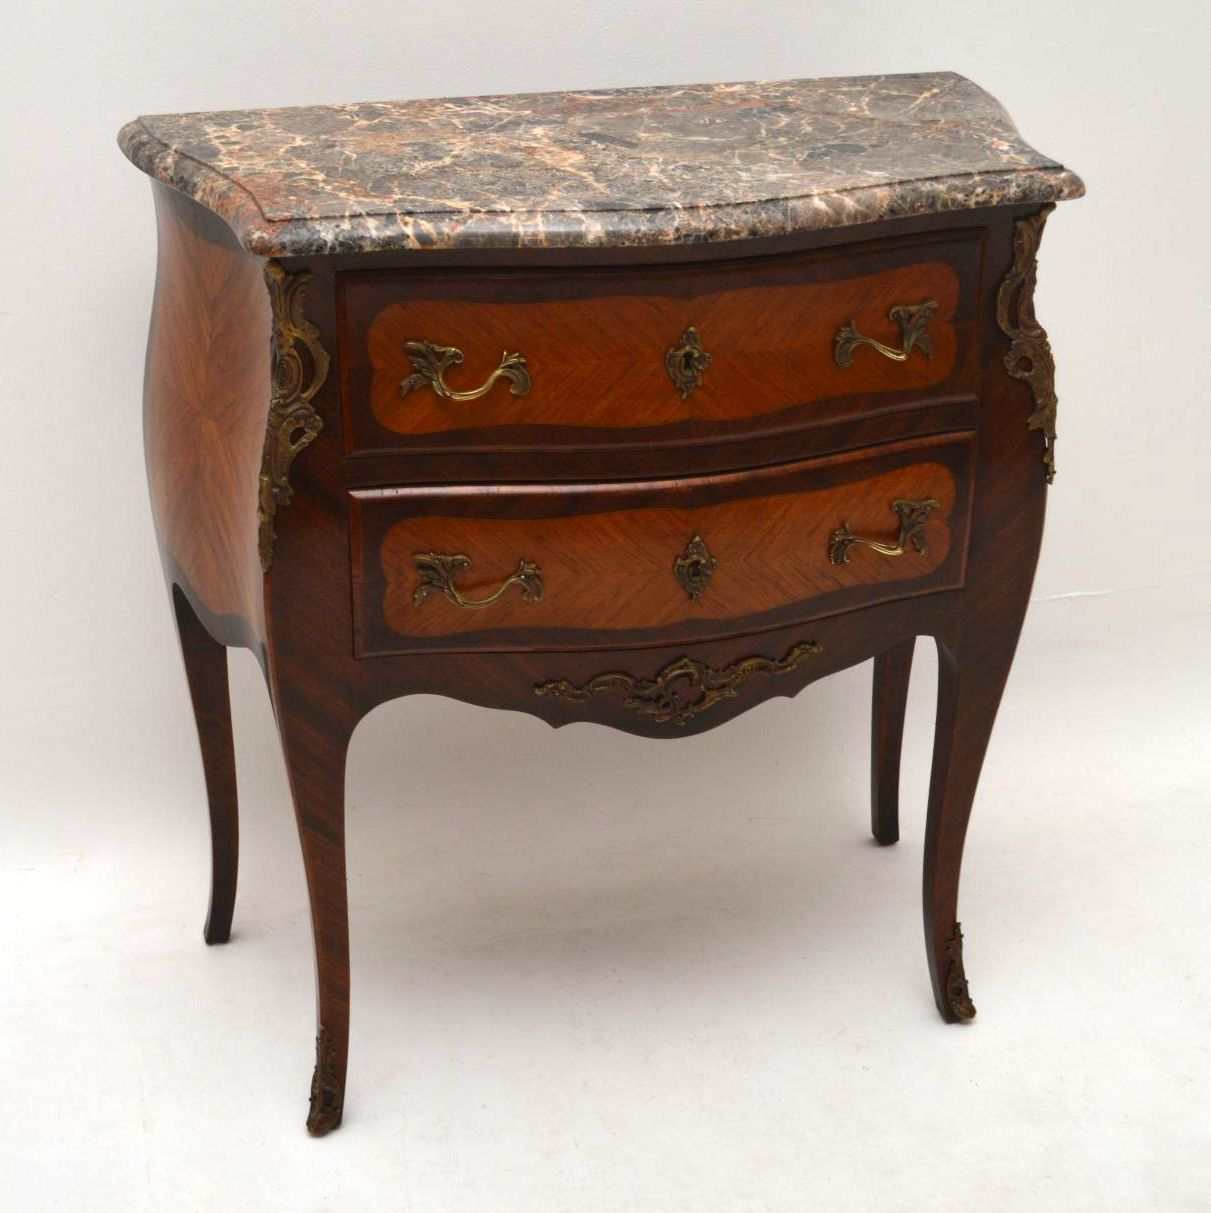 Antique French Marble Top Bombe Commode